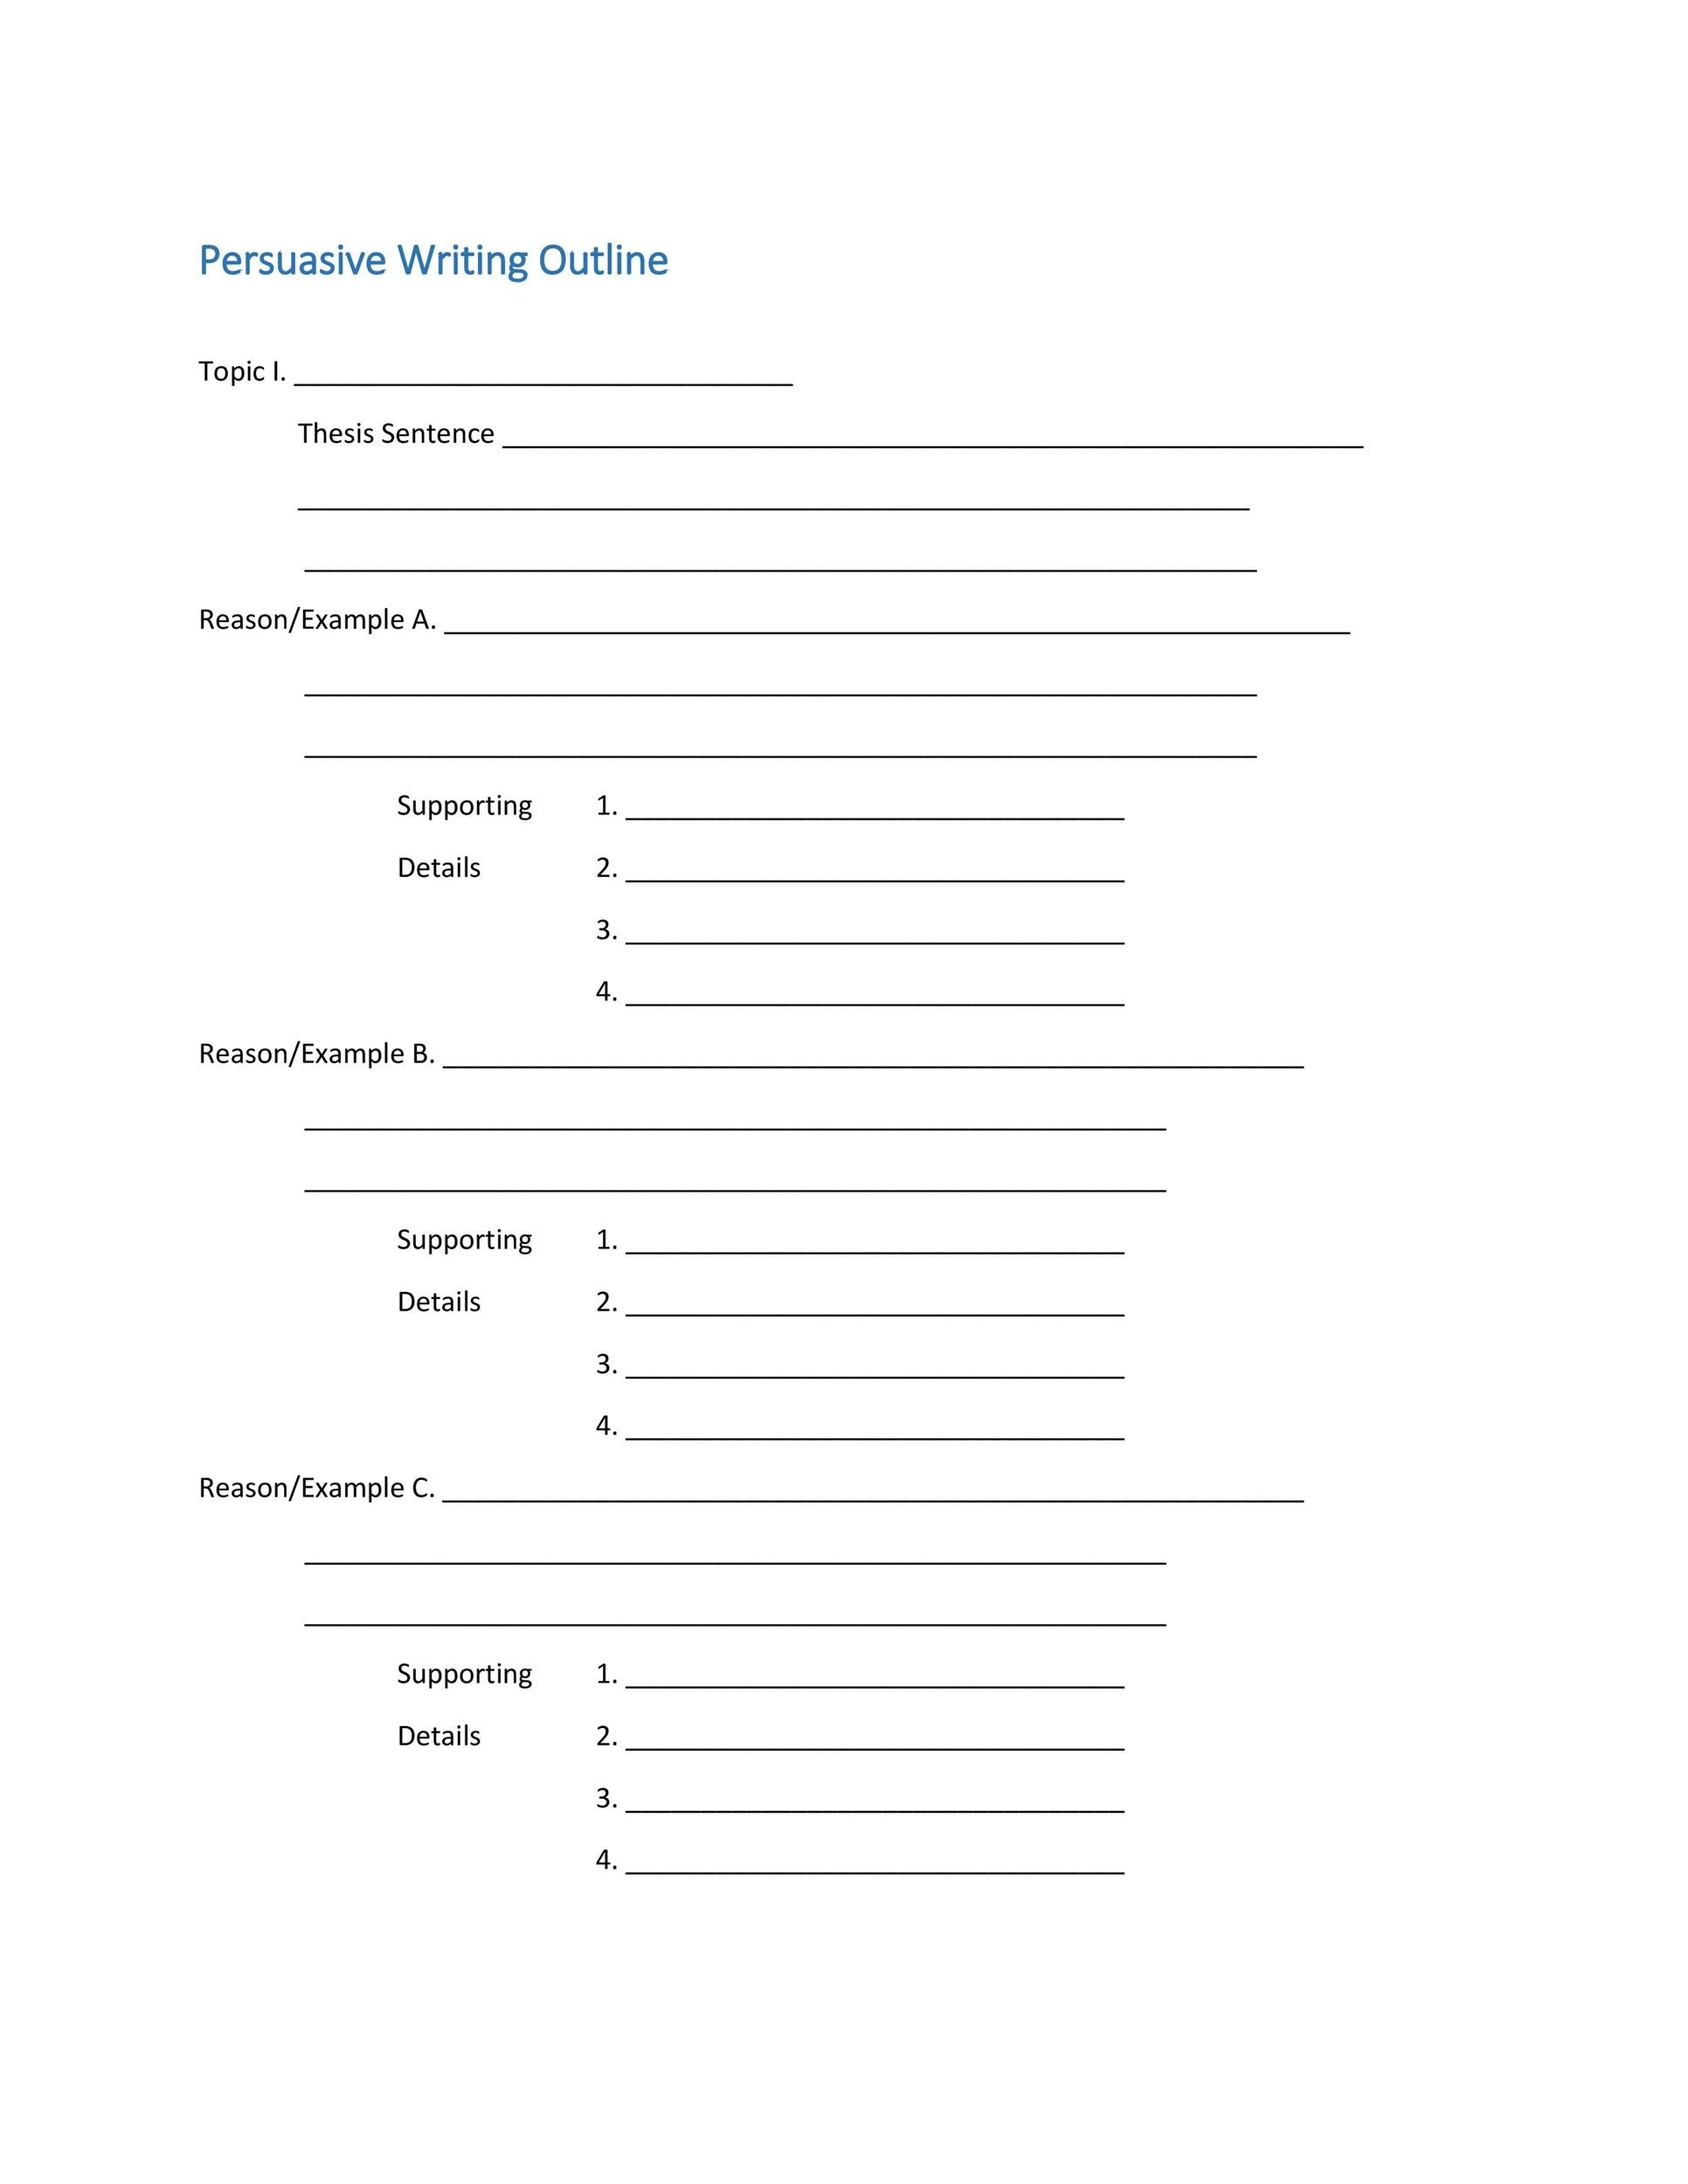 writing outline template - Gecce.tackletarts.co